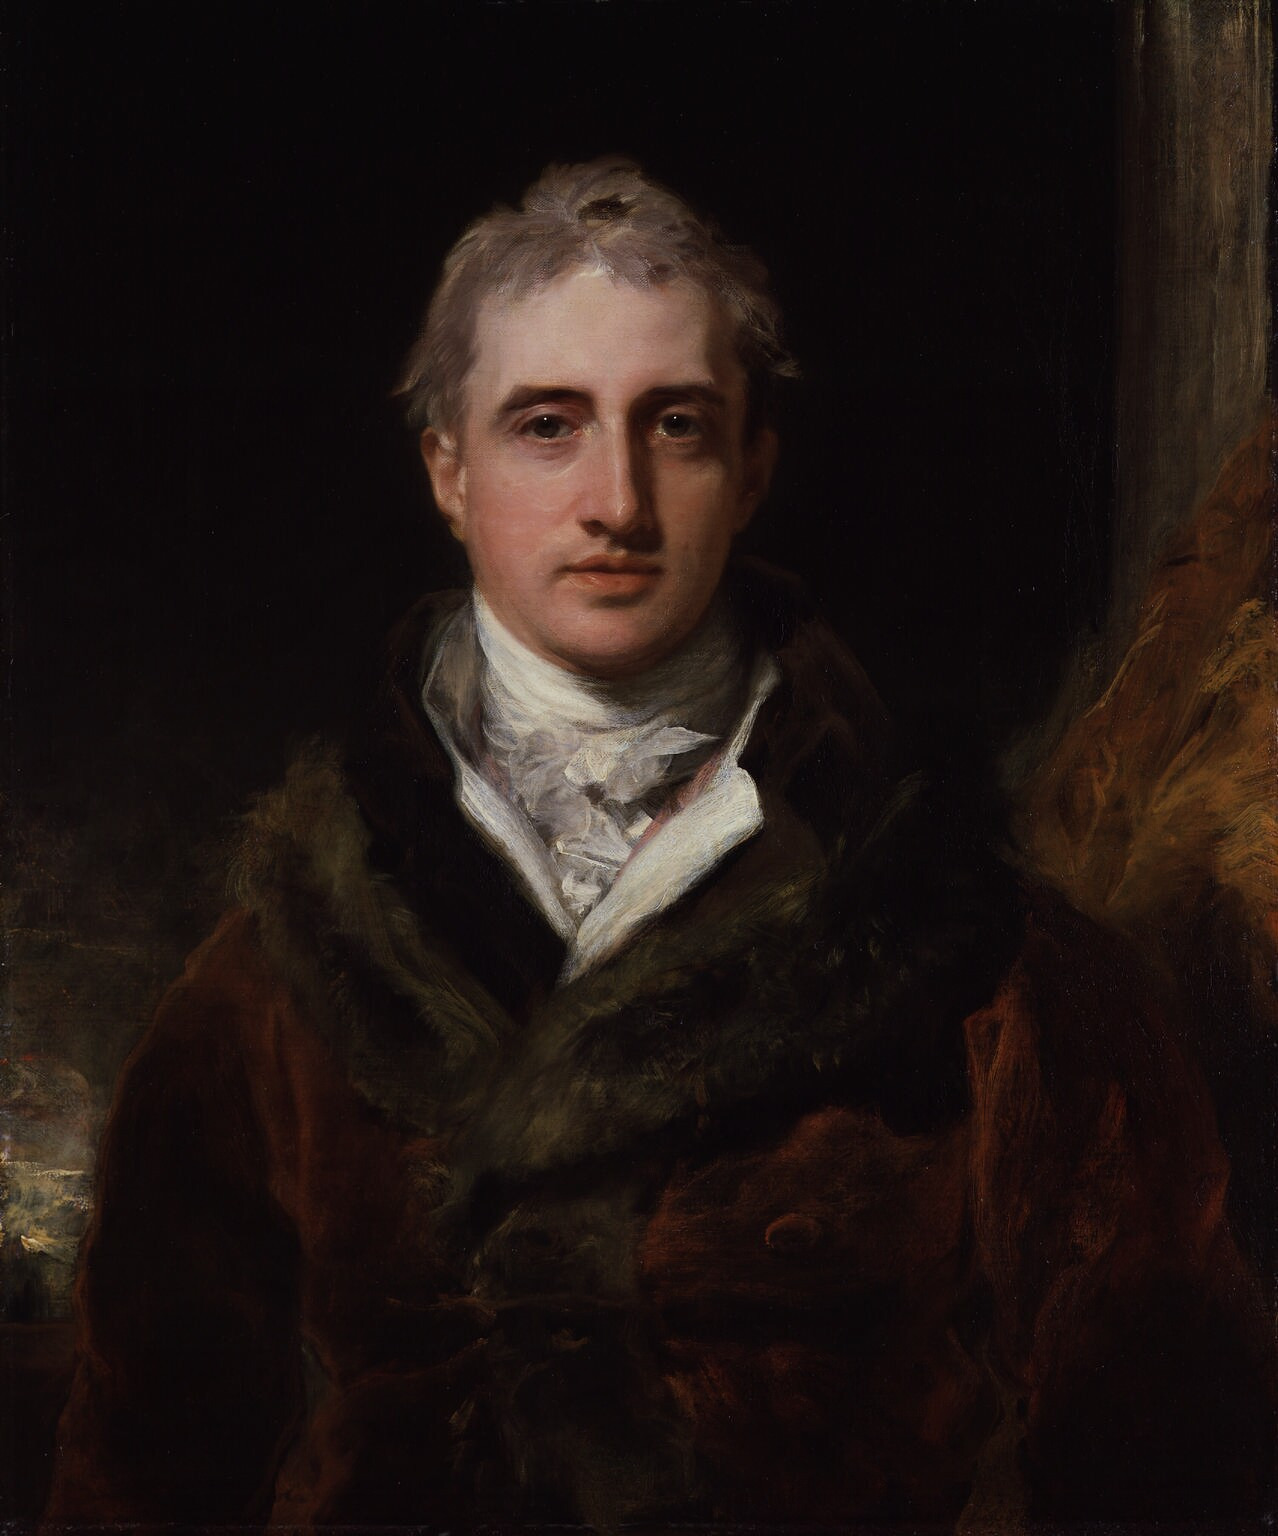 File:Lord Castlereagh Marquess of Londonderry.jpg